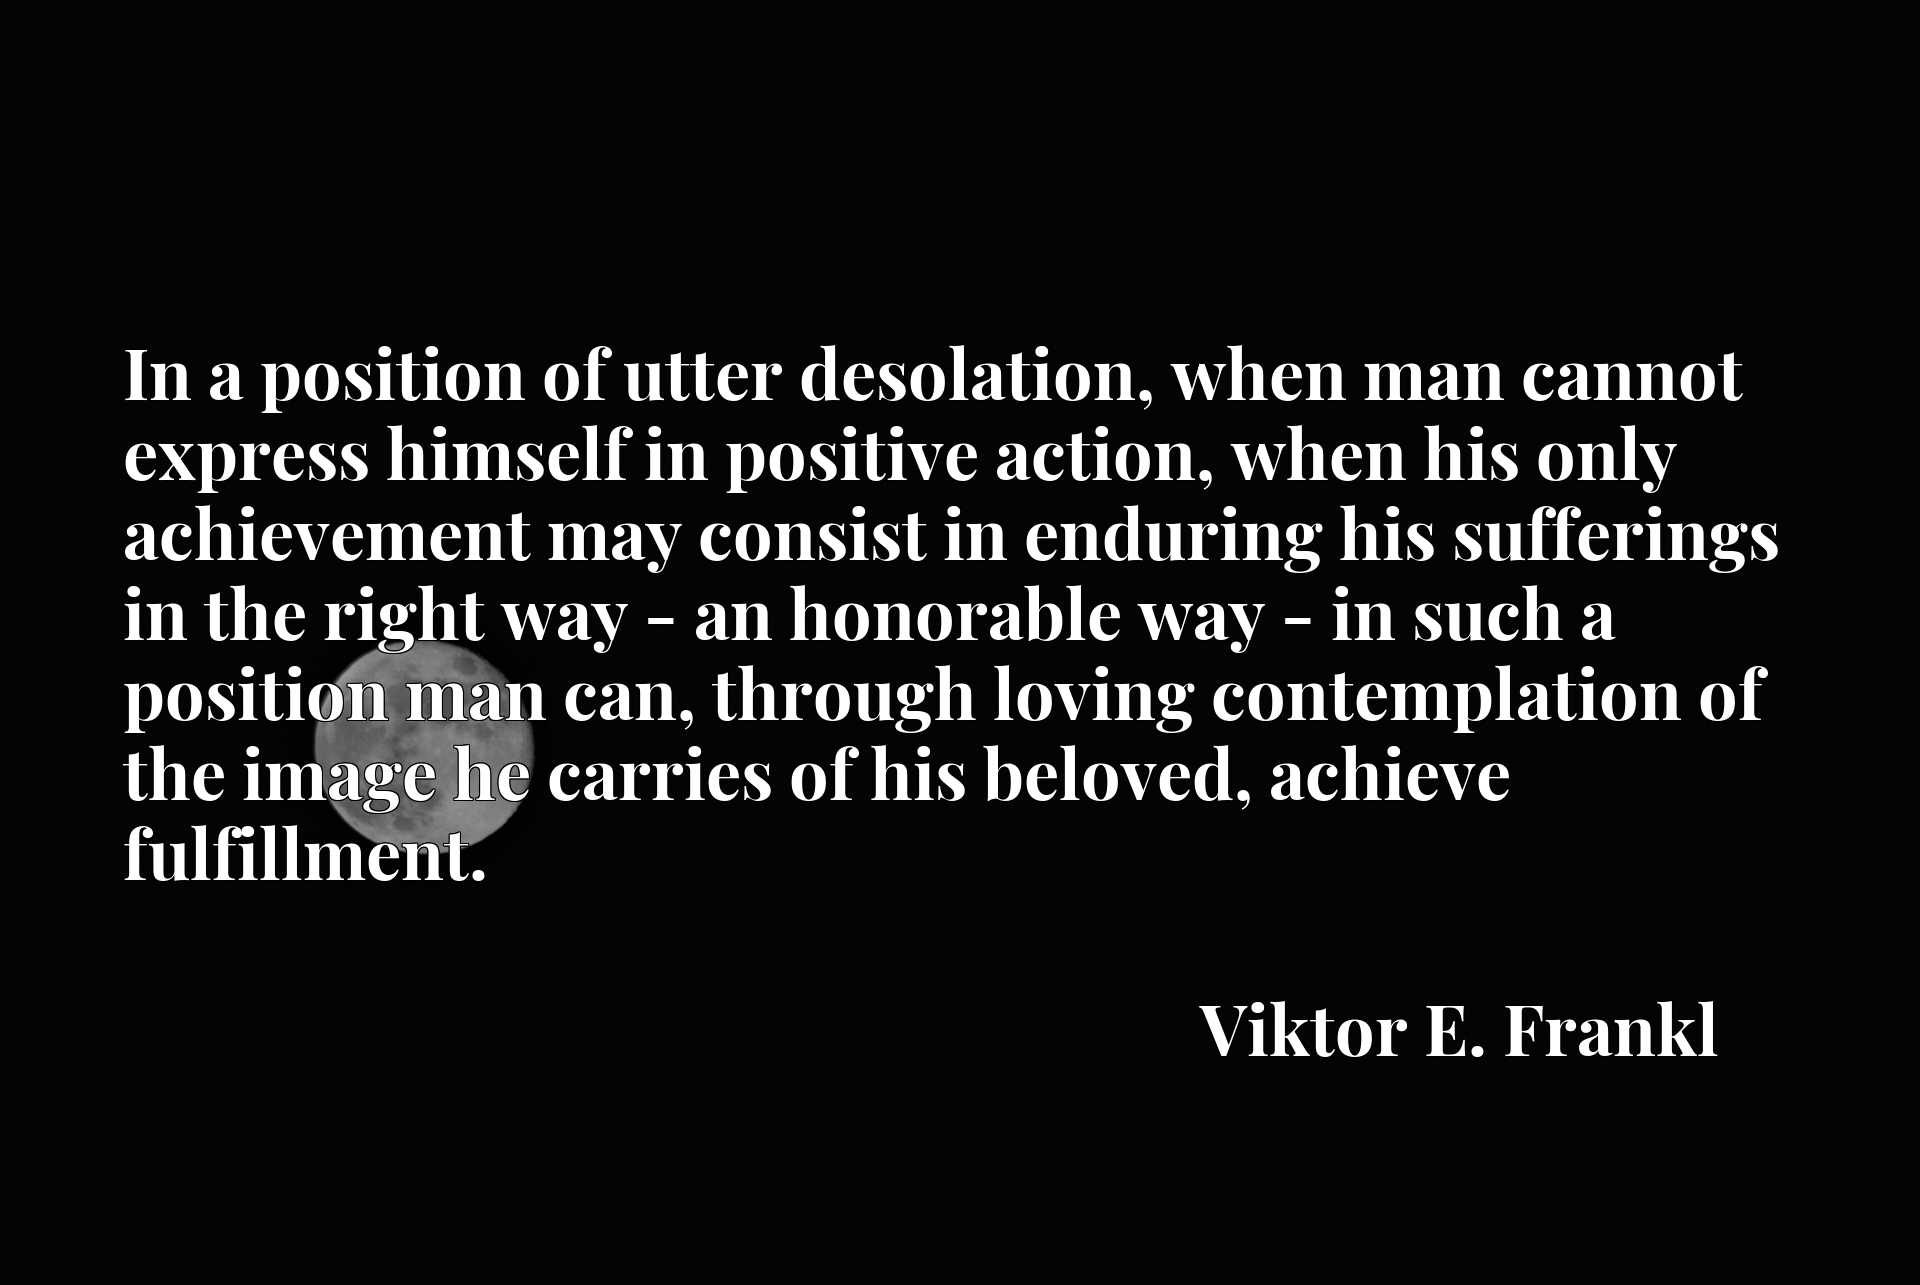 In a position of utter desolation, when man cannot express himself in positive action, when his only achievement may consist in enduring his sufferings in the right way - an honorable way - in such a position man can, through loving contemplation of the image he carries of his beloved, achieve fulfillment.